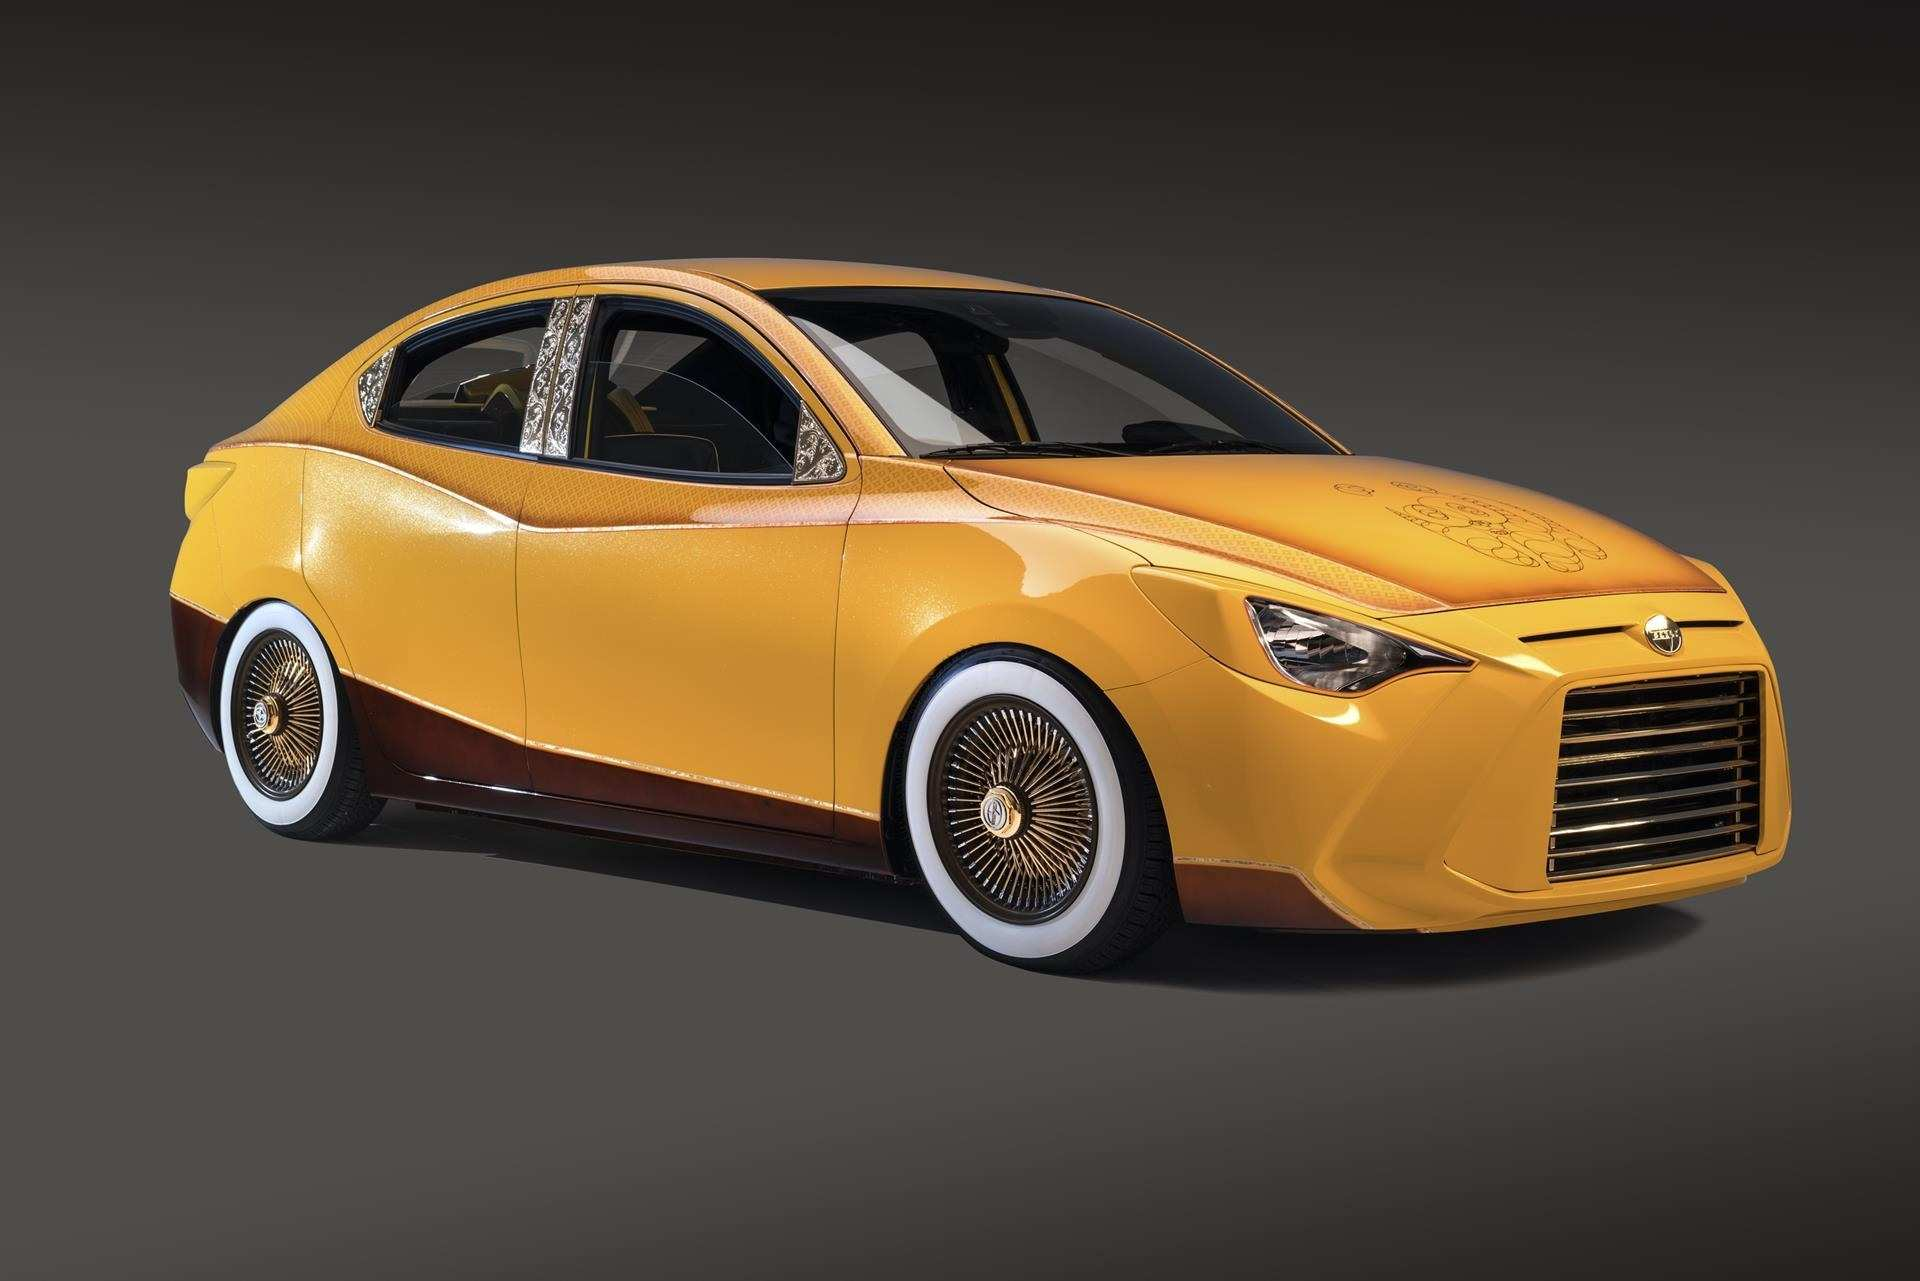 55 All New 2020 Scion Tced Photos for 2020 Scion Tced